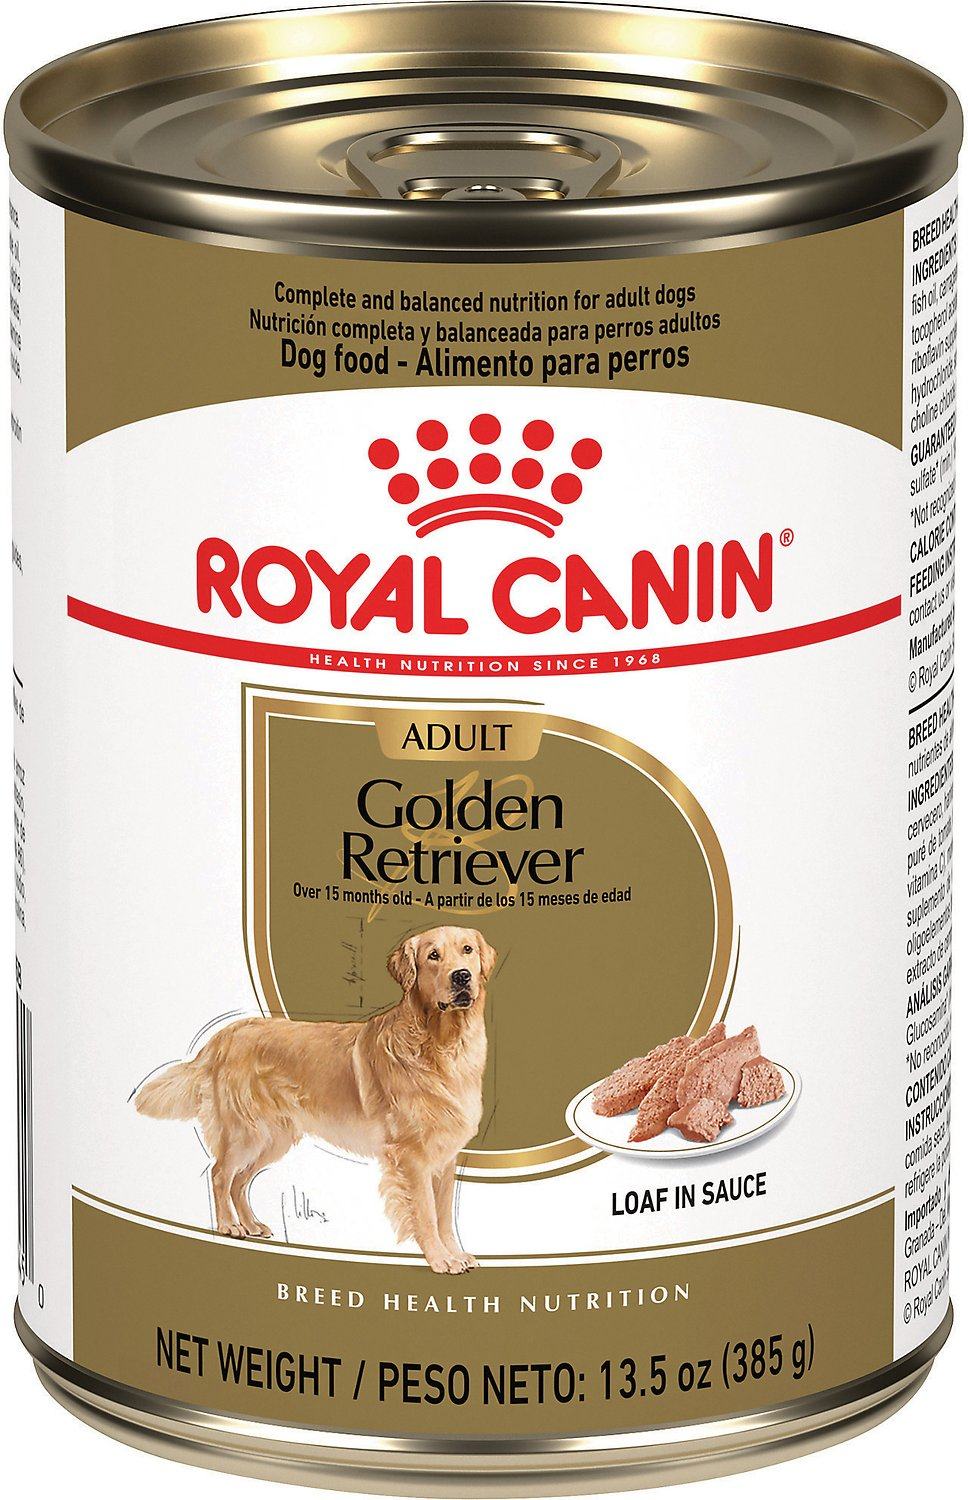 Golden Retriever 2 Meses Royal Canin Golden Retriever Loaf In Sauce Canned Dog Food 13 5 Oz Case Of 12